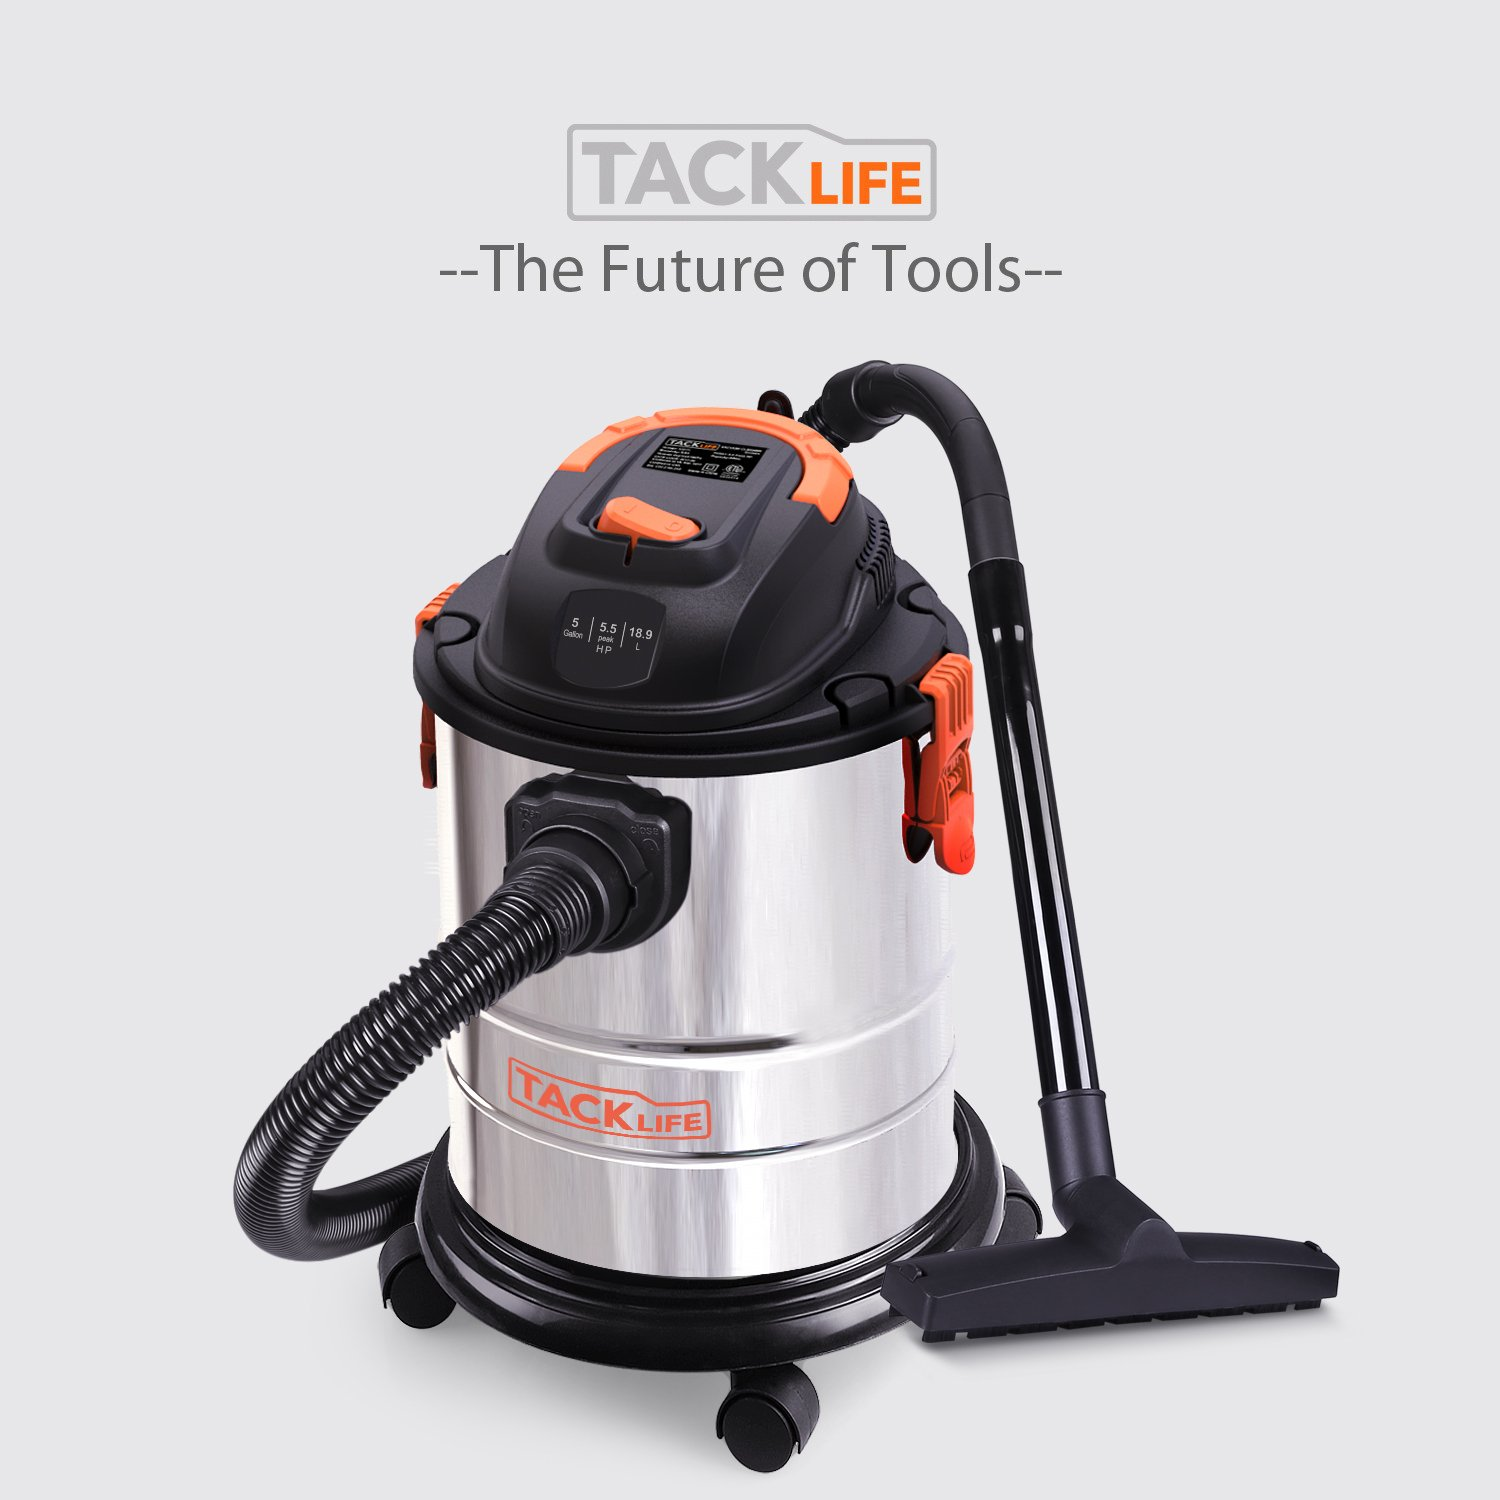 Stainless Steel Wet//Dry//Blow 3 in 1 Multifunction 1000W Pure Copper Motor Wet Dry Vacuum 4-Layer Filtration System,Portable Shop Vac with Attachments TACKLIFE 5 Gallon 5.5 Peak HP Shop Vacuum